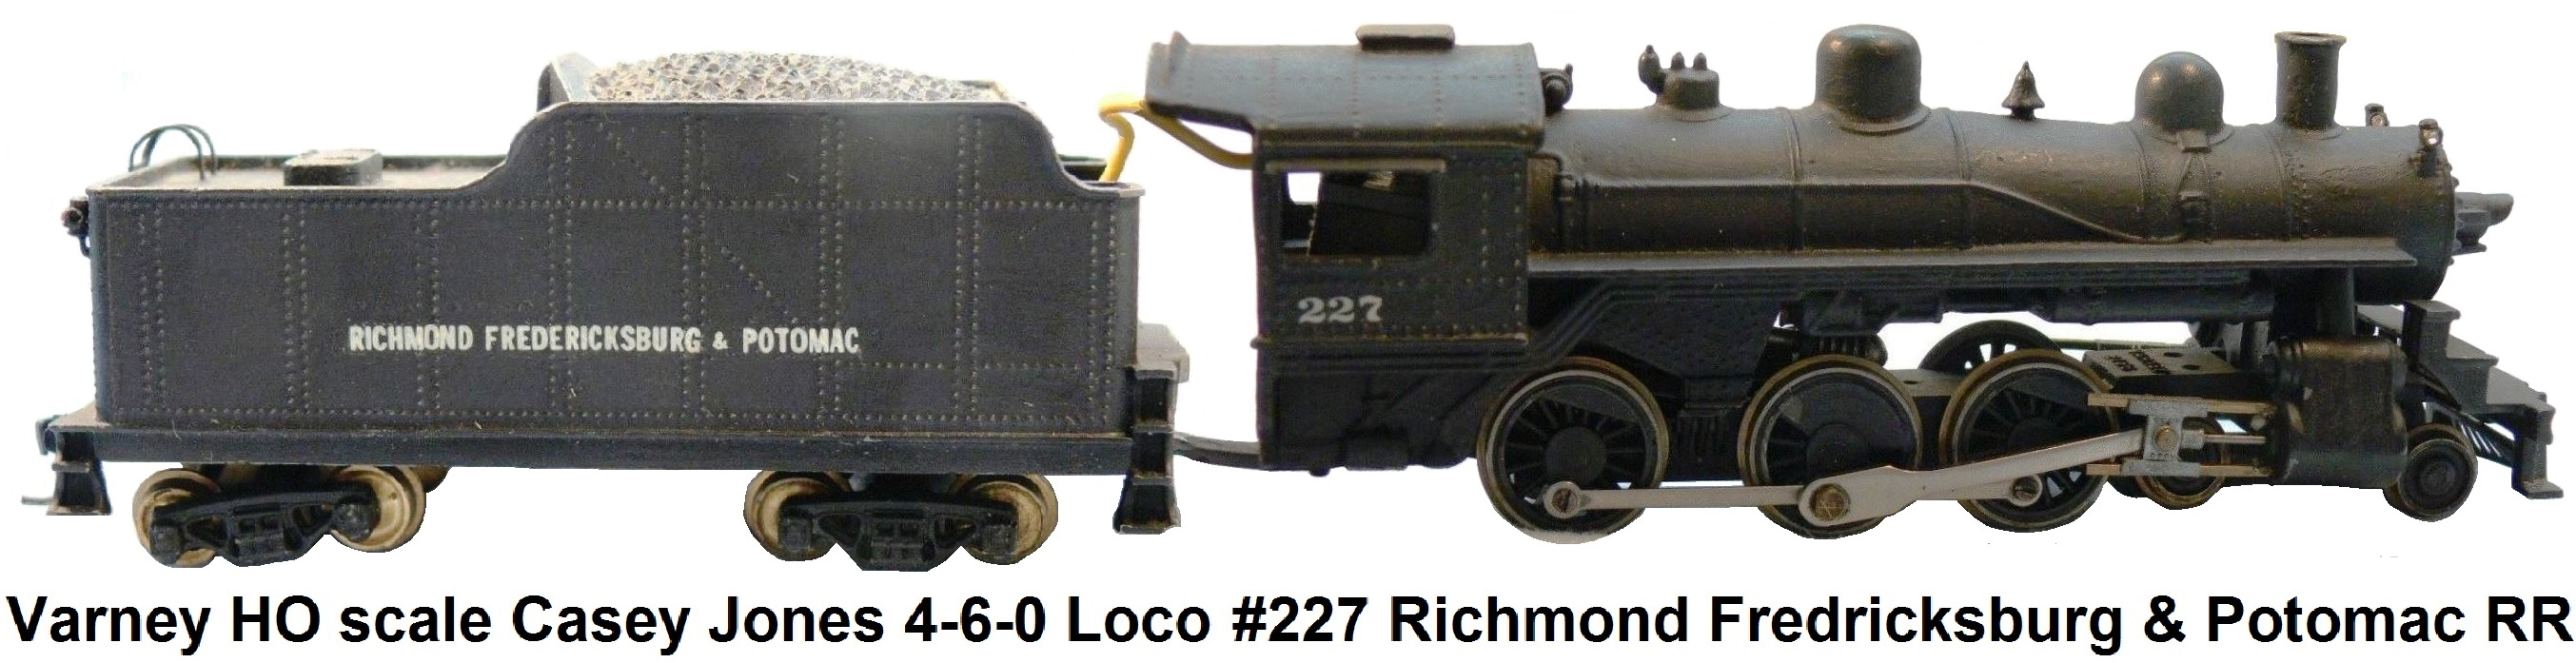 Varney HO scale 4-6-0 Casey Jones loco and tender #227 Richmond Fedricksburg & Potomoc RR